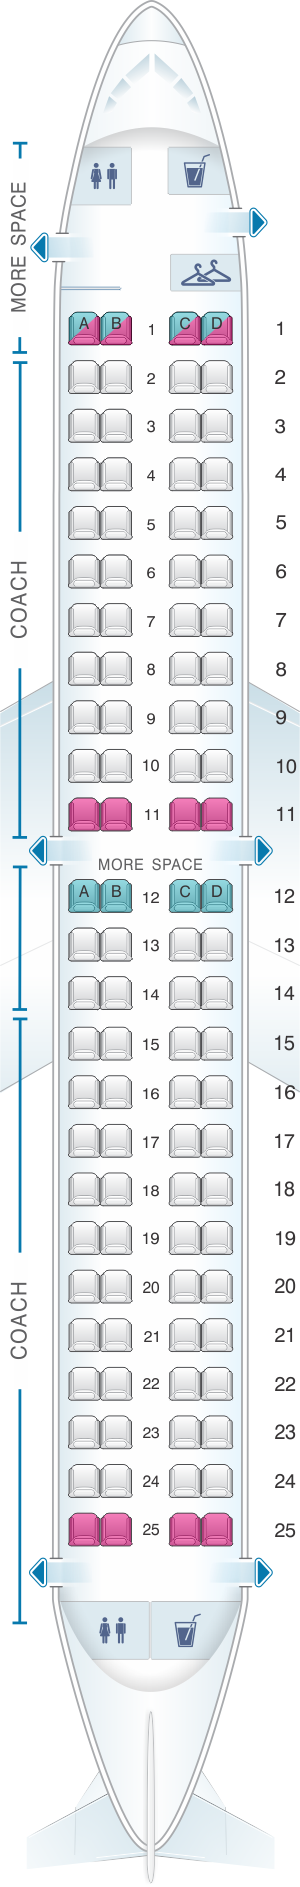 Seat map for JetBlue Airways Embraer EMB 190